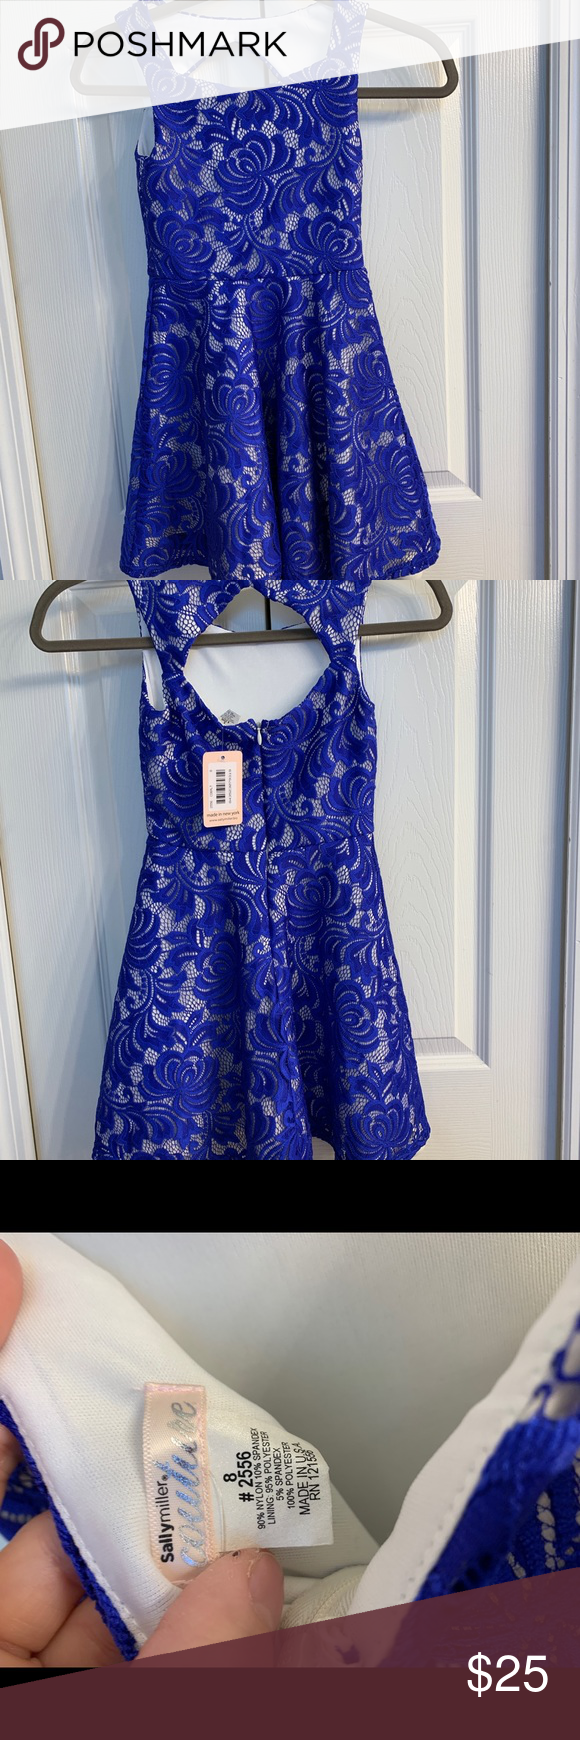 NWT size 8 beautiful royal blue lace dress!!! NWT size 8 gorgeous royal blue lace dress by Sally Miller Couture. No imperfection! Please see pictures for detailed reference. Bundle and save or let's make a deal! Sally Miller Dresses #sallymiller NWT size 8 beautiful royal blue lace dress!!! NWT size 8 gorgeous royal blue lace dress by Sally Miller Couture. No imperfection! Please see pictures for detailed reference. Bundle and save or let's make a deal! Sally Miller Dresses #sallymiller NWT #sallymiller